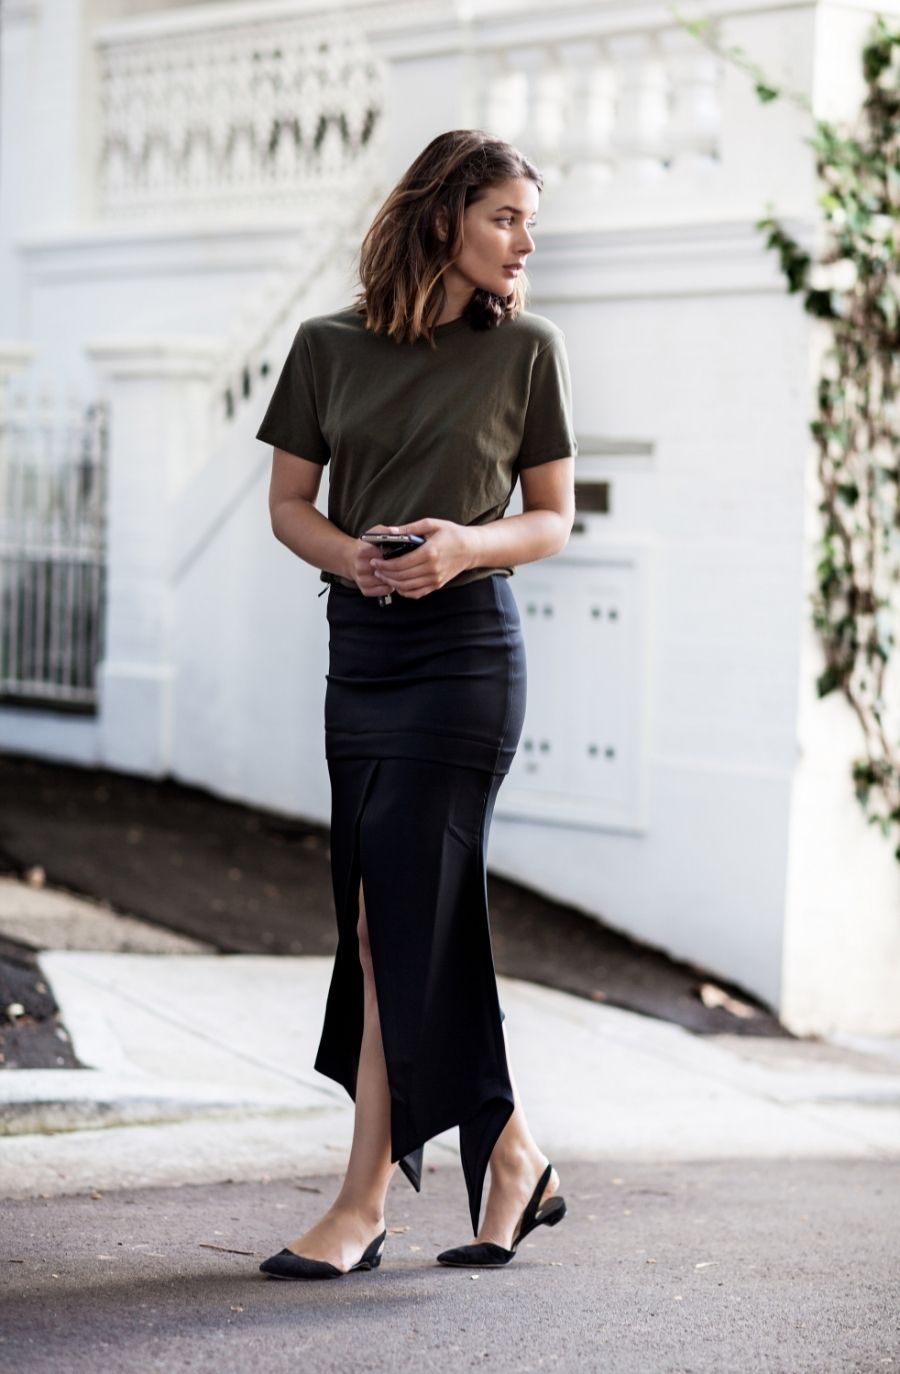 3c7a7c8f6 How to Dress Like Fashion Blogger Sara Donaldson—55 Outfit Ideas to Steal |  Casual t-shirt + pencil skirt styled with flats | @stylecaster